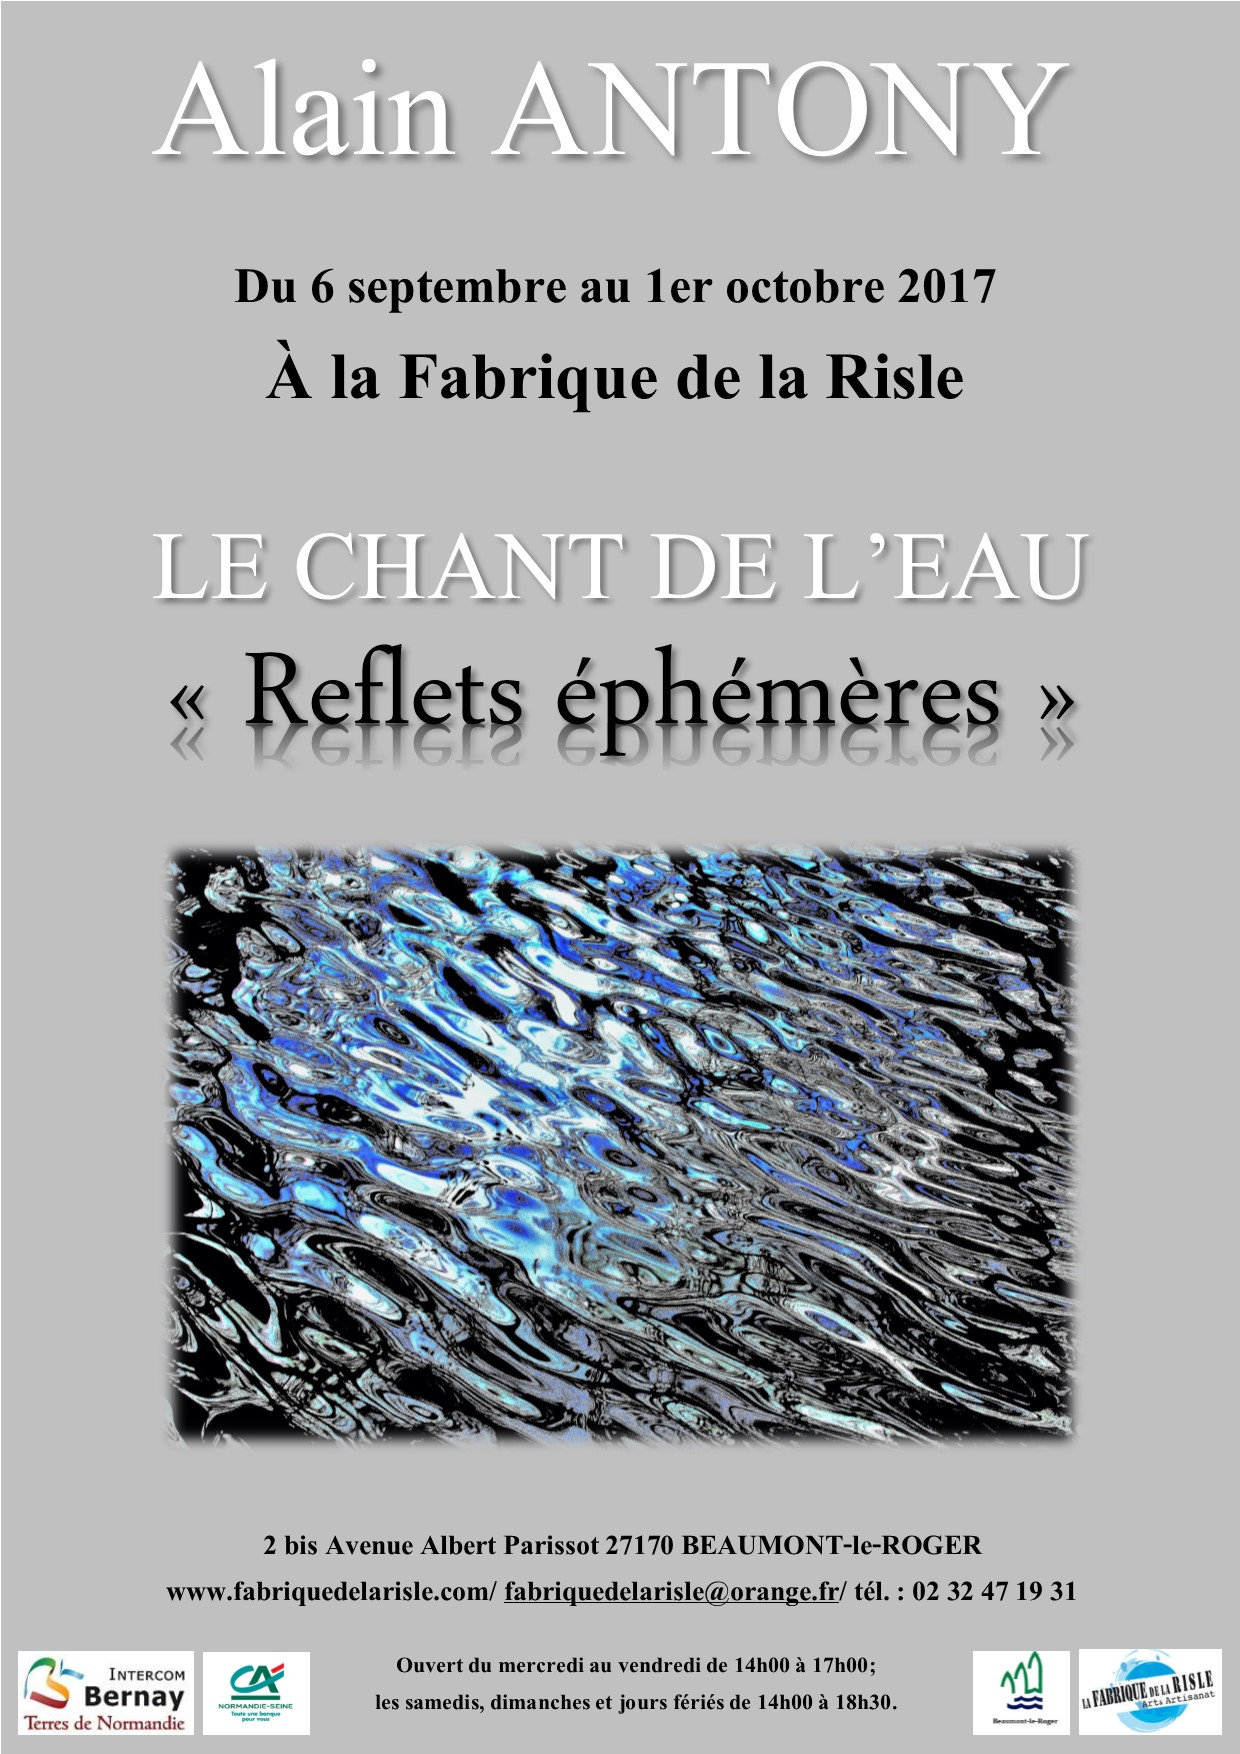 Exposition de photographies à la Fabrique de la Risle